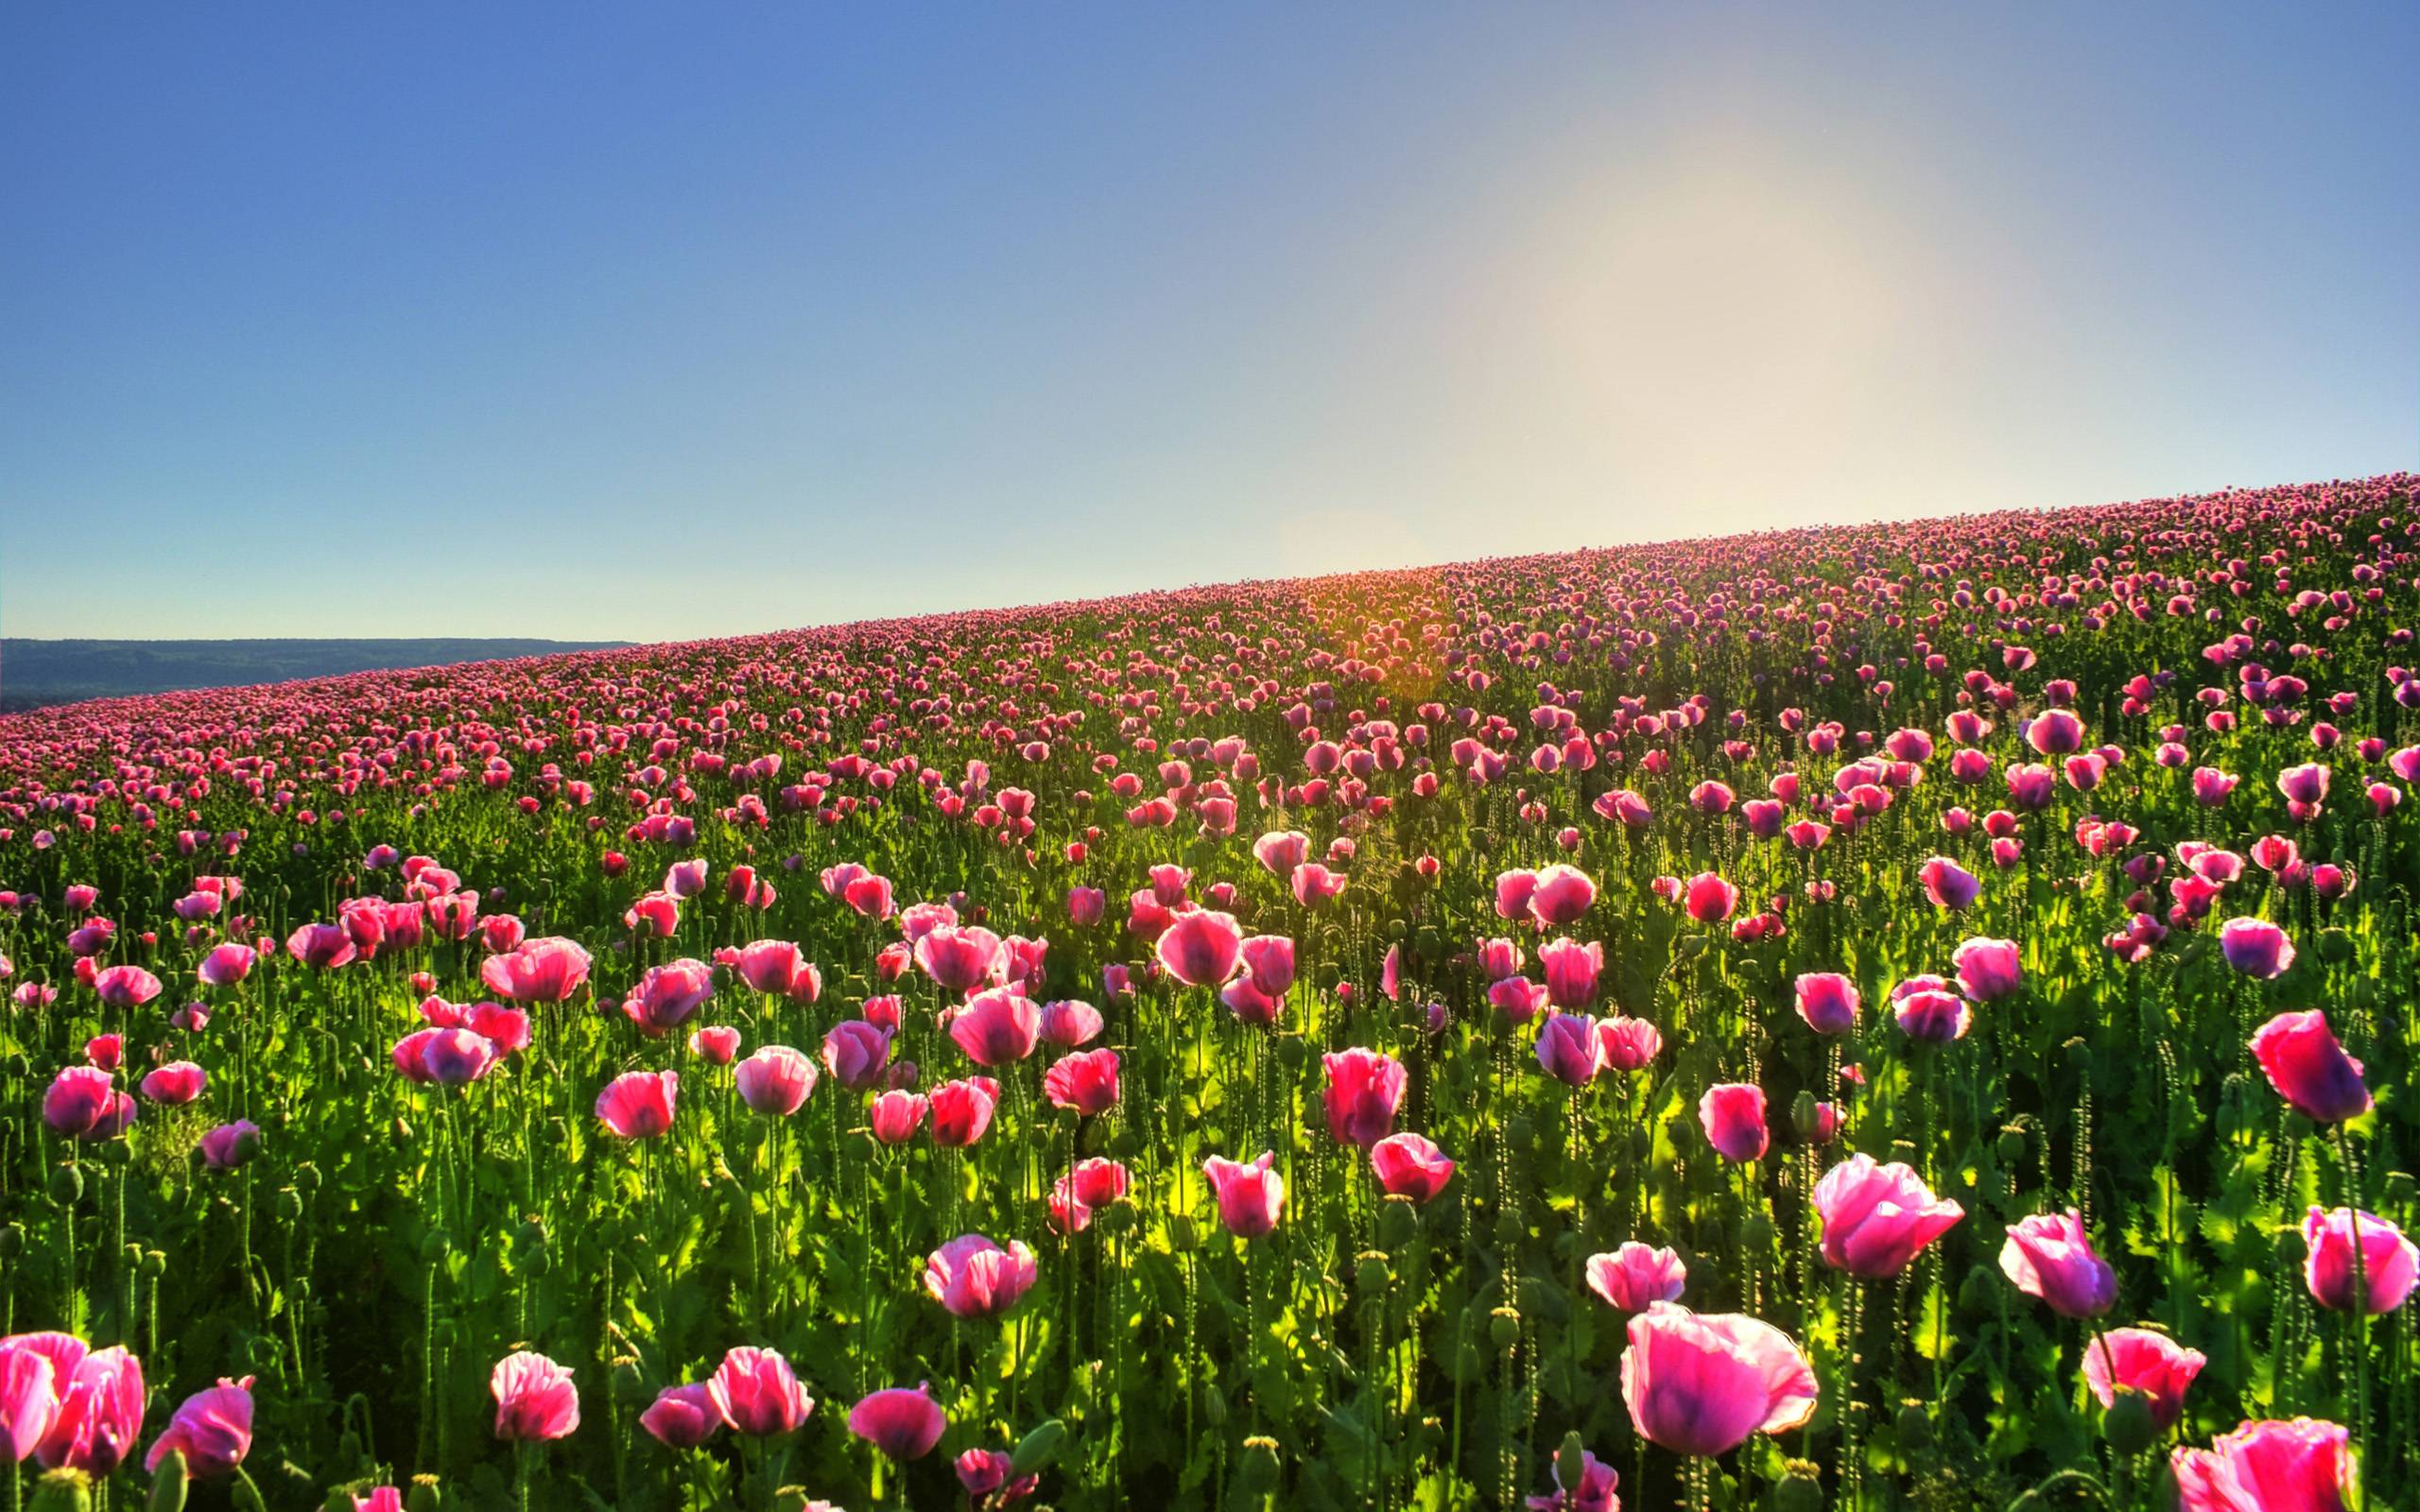 flowers easy on the eye images flowers hd hits picture pink - Flower Garden Wallpaper